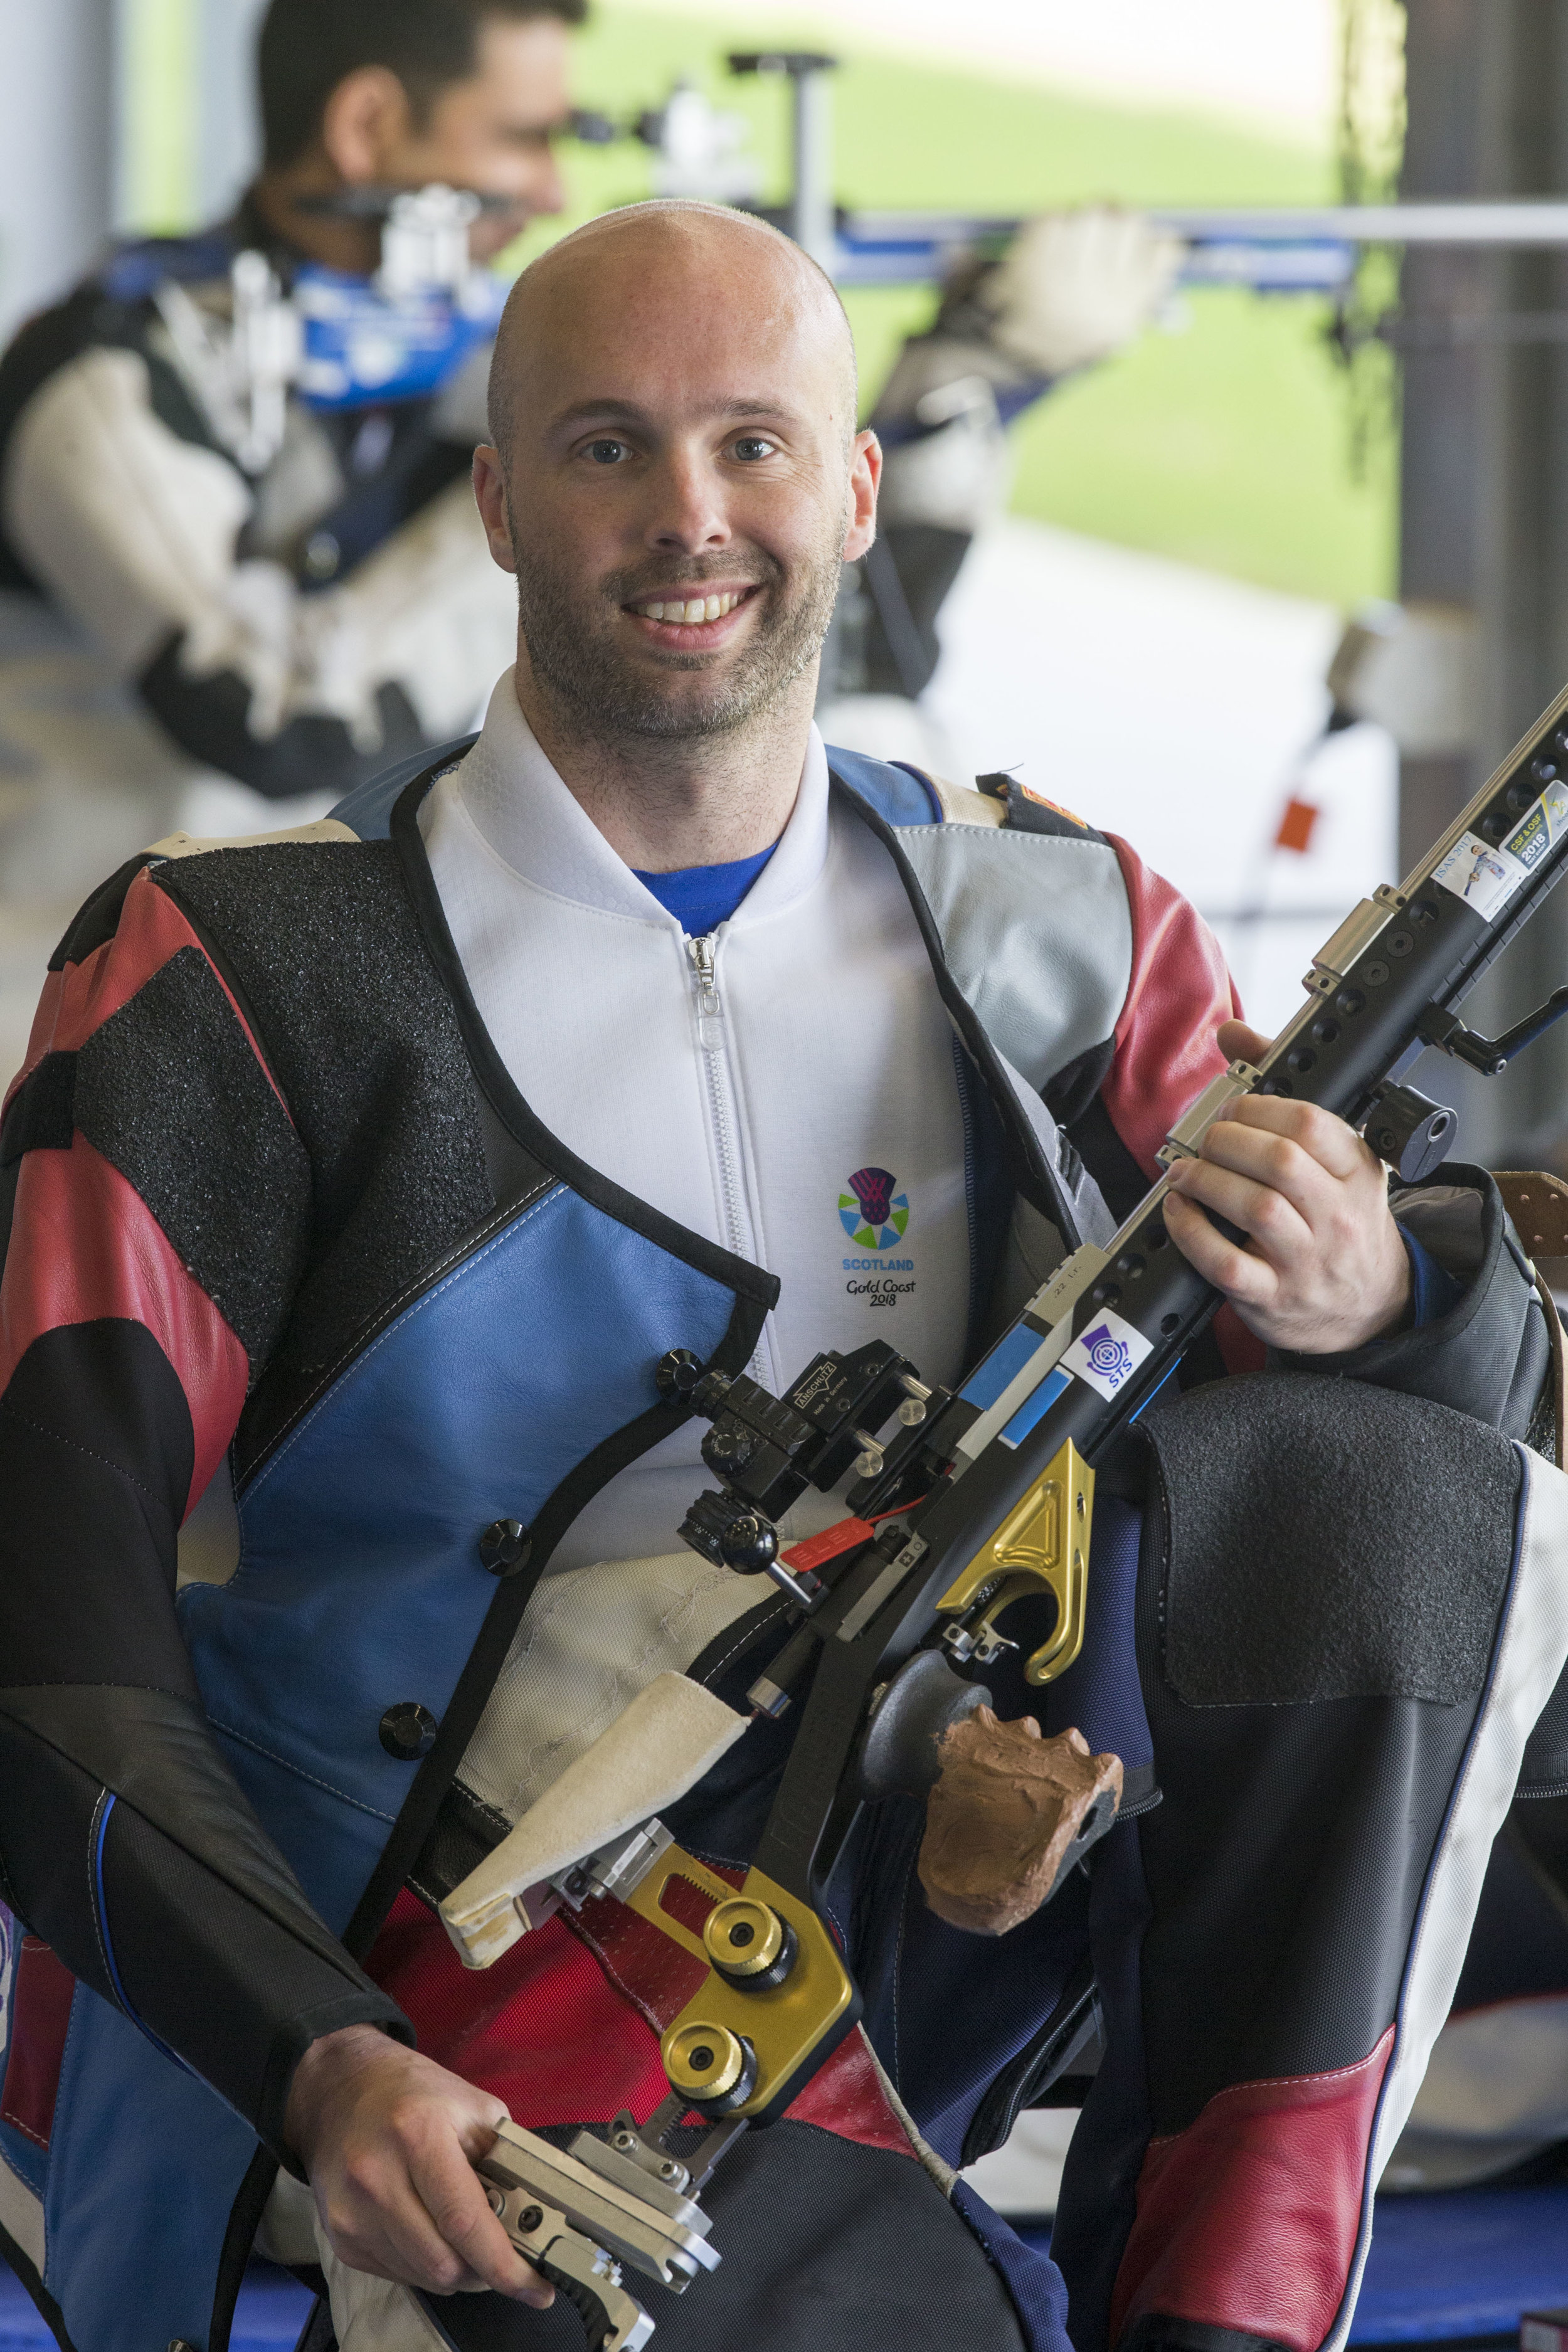 Neil was competing in his second event aiming for a second medal